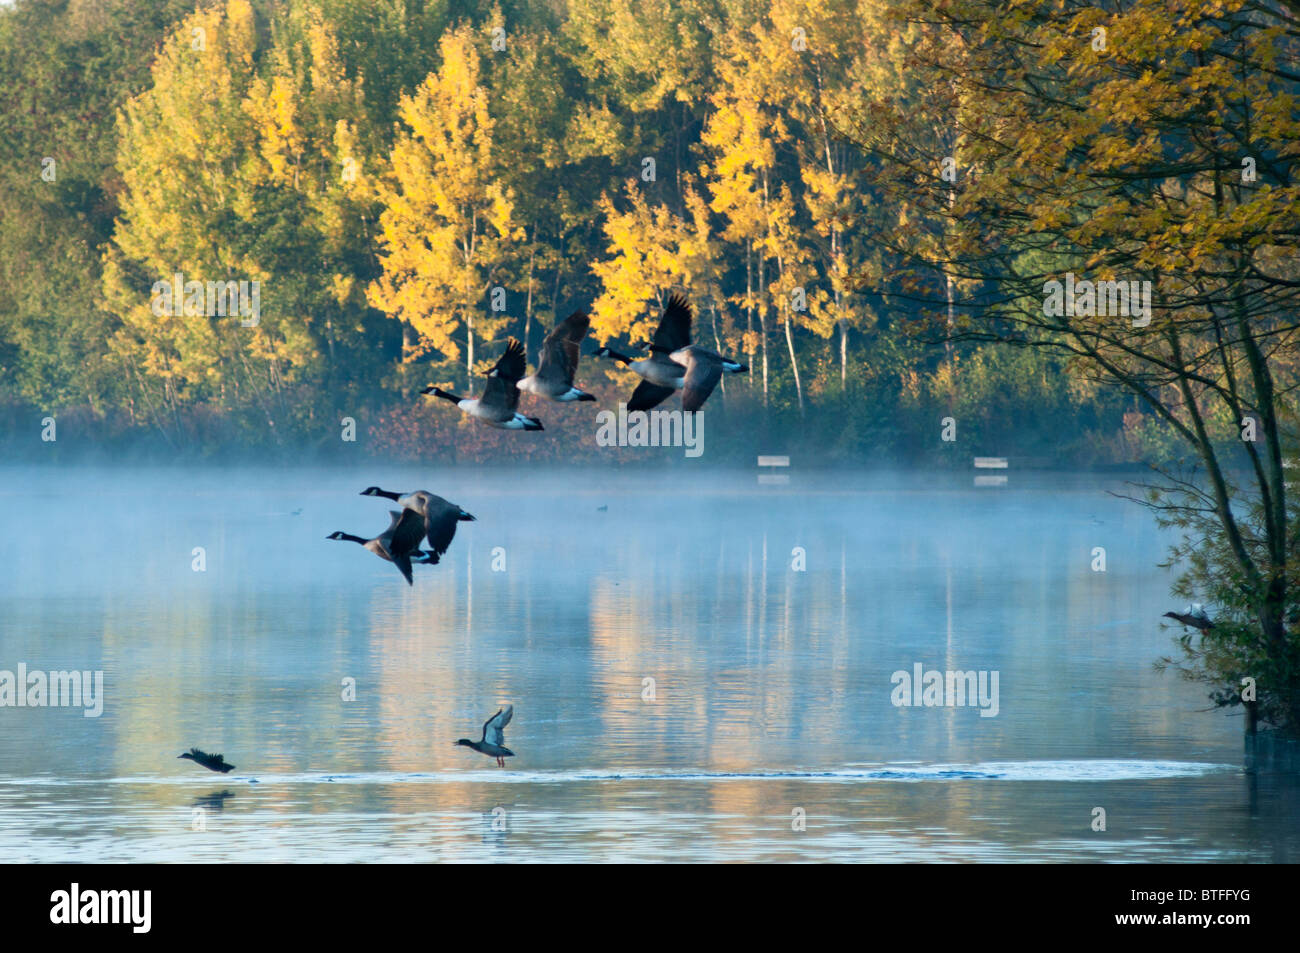 canada-geese-fly-over-a-misty-scenic-lak